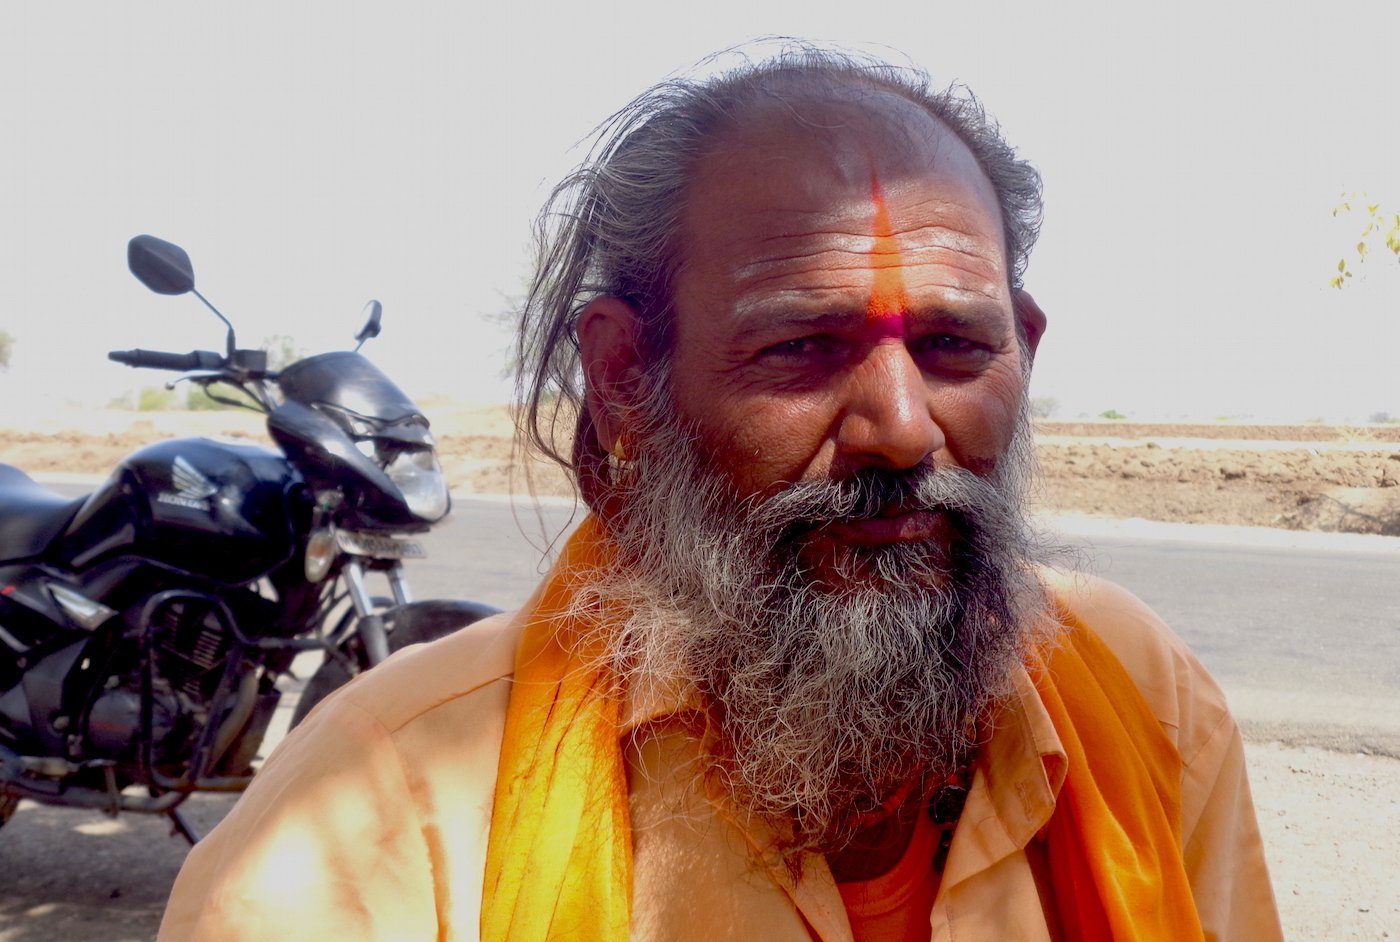 'When you are desperate for water, you keep digging,' says Dattusingh Bayas about how he has accumulated a debt of over Rs. 3 lakhs sinking eight borewells. Parth MN